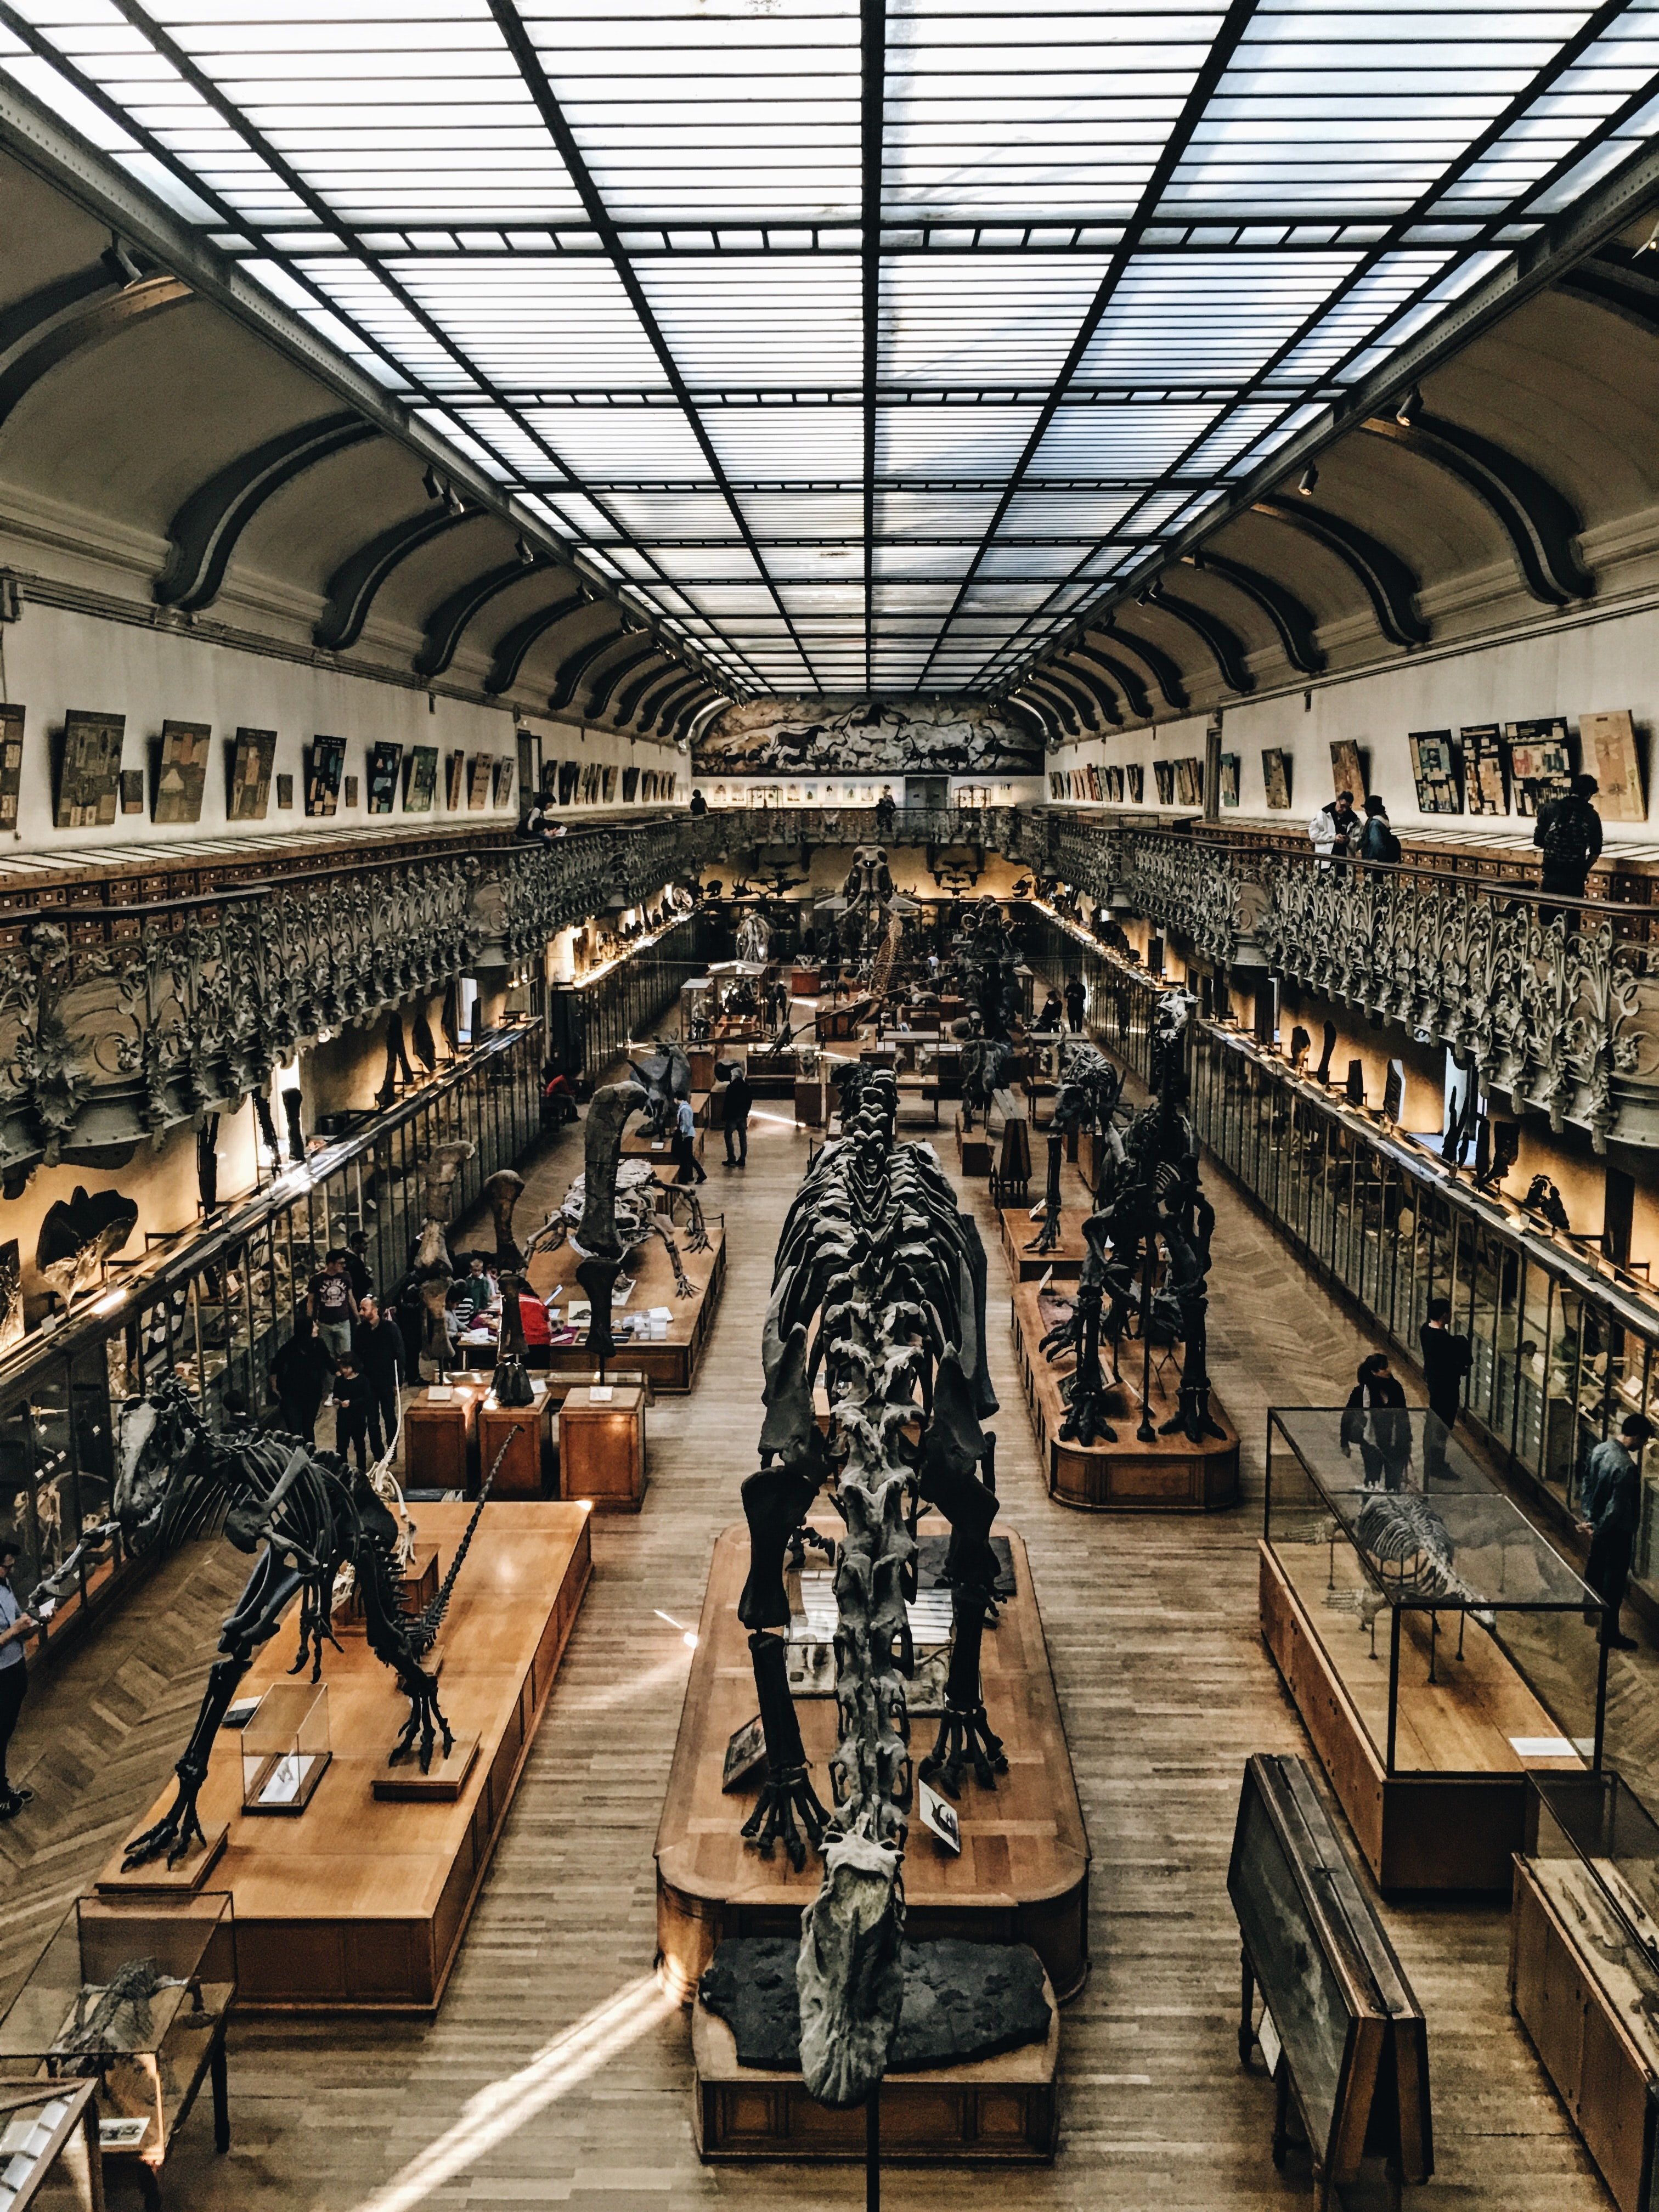 A museum with dinosaur and reptile skeletons